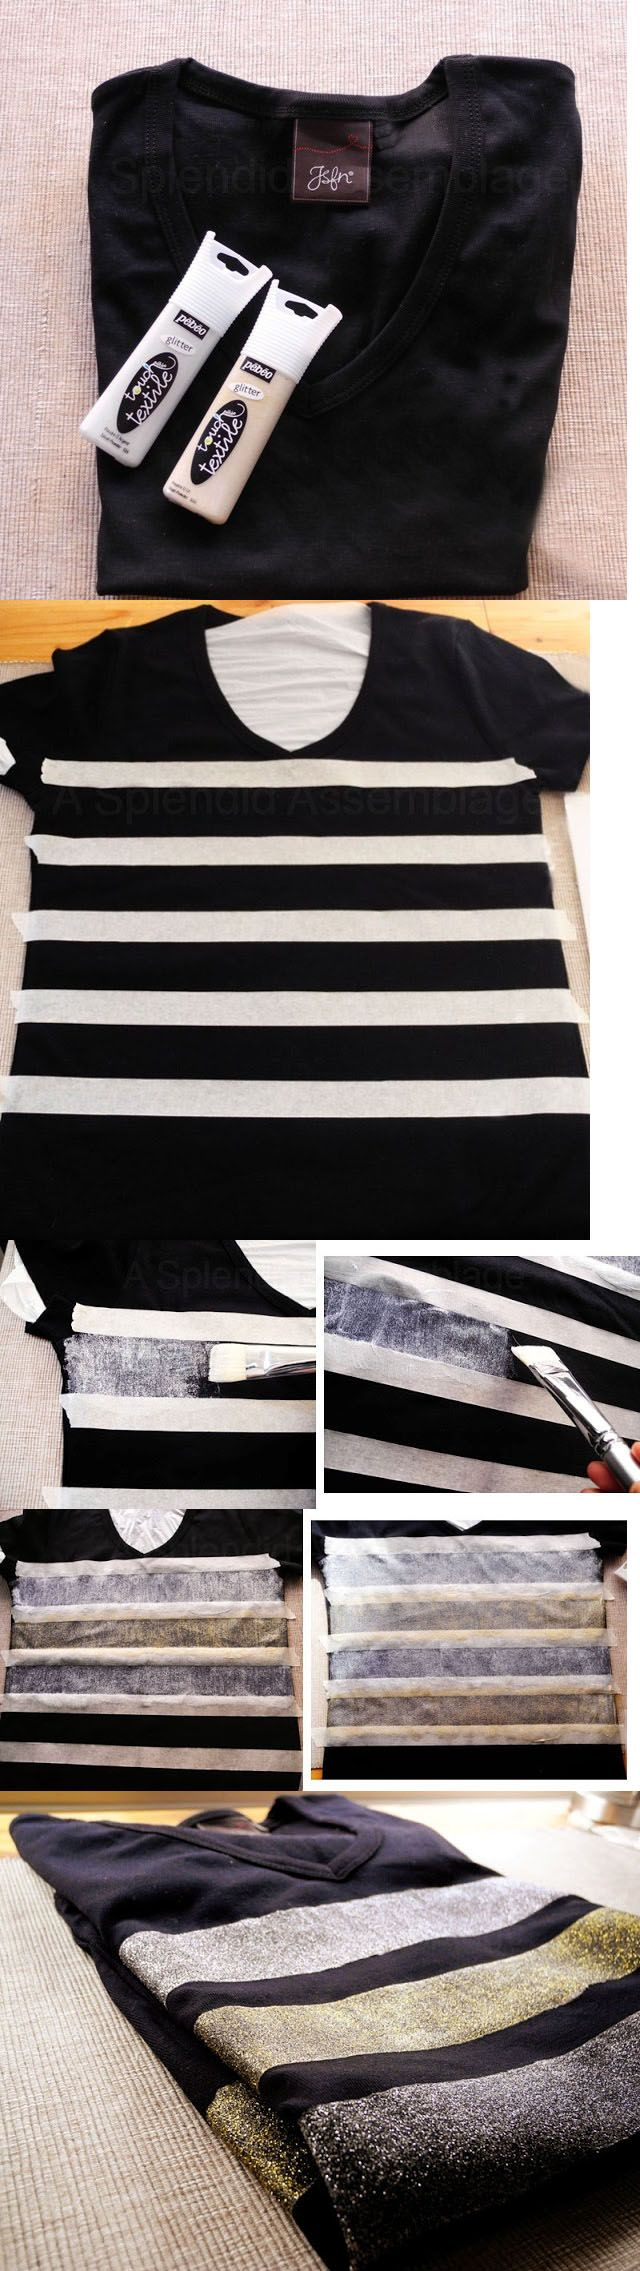 10 useful diy clothes projects for girls pretty designs. Black Bedroom Furniture Sets. Home Design Ideas